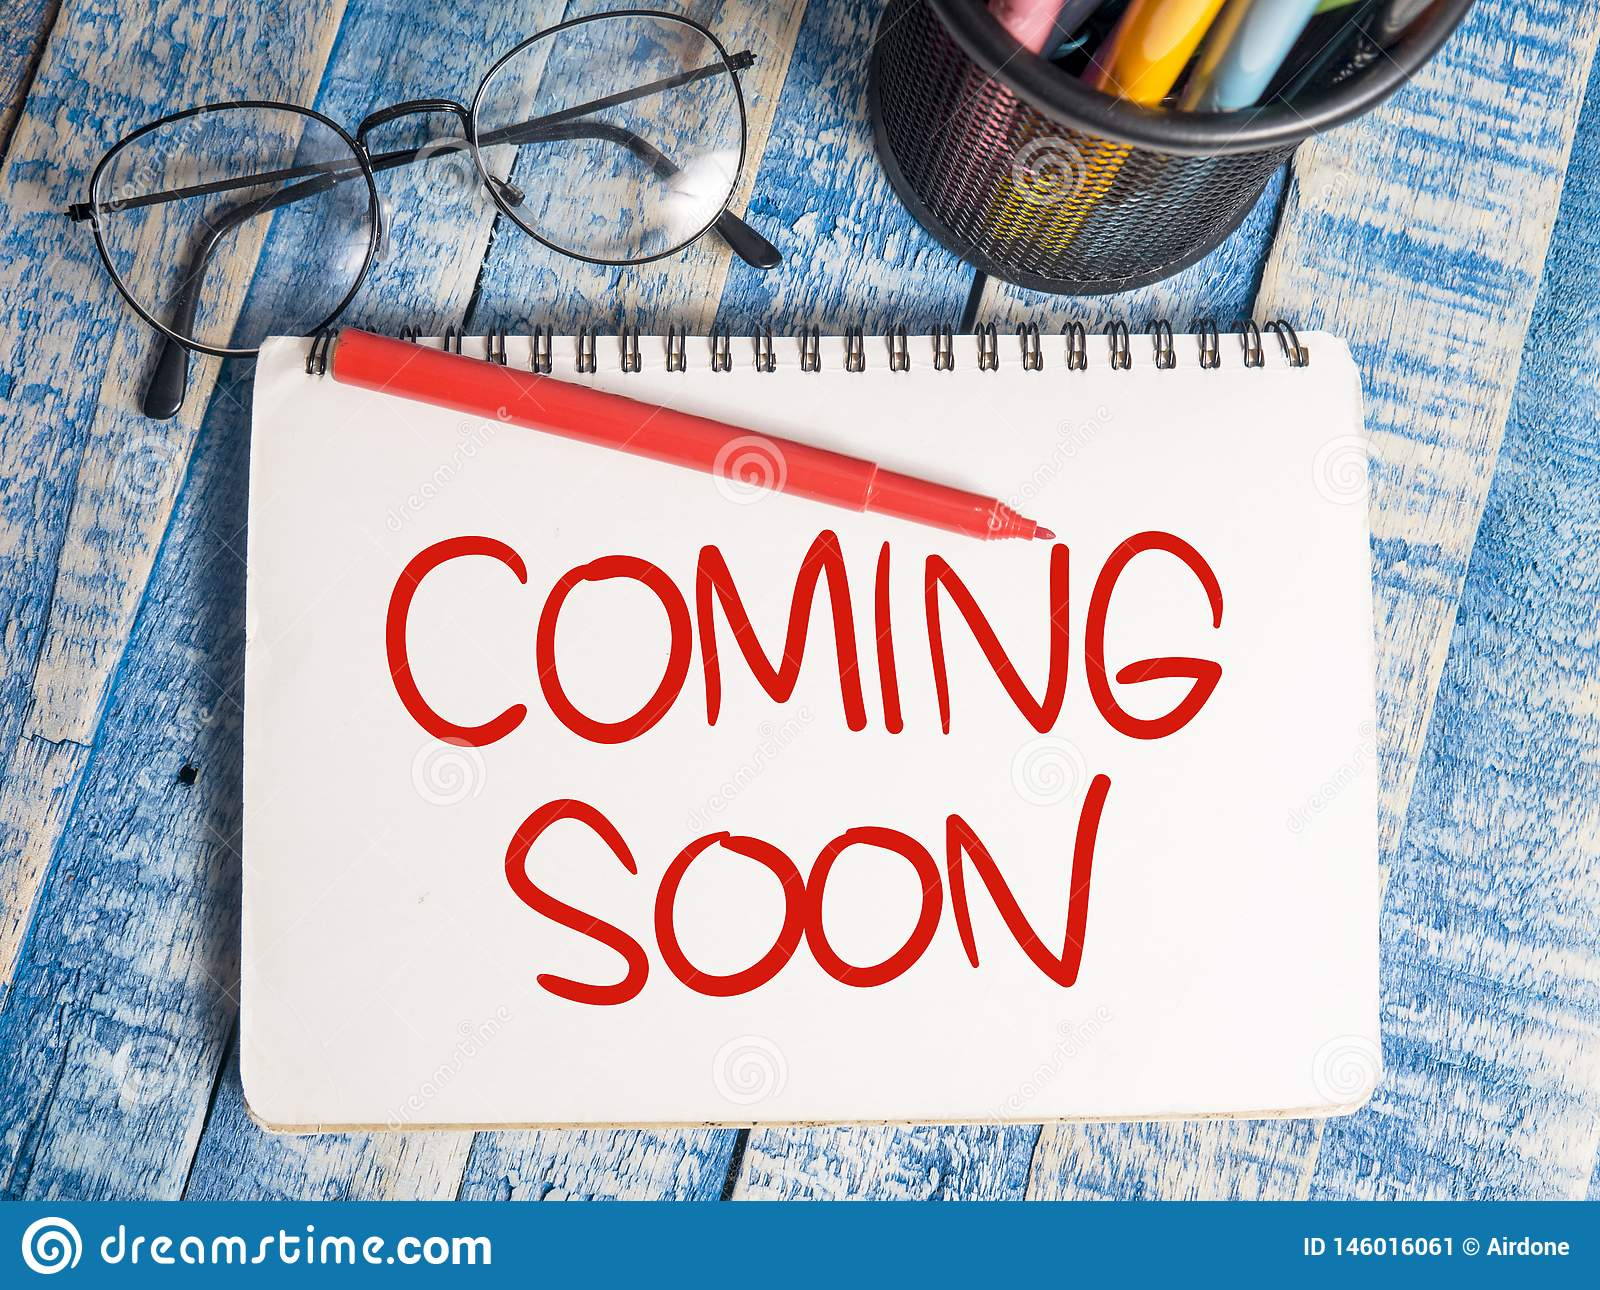 Coming Soon Words Typography Concept Stock Image Image Of Open Concept 146016061